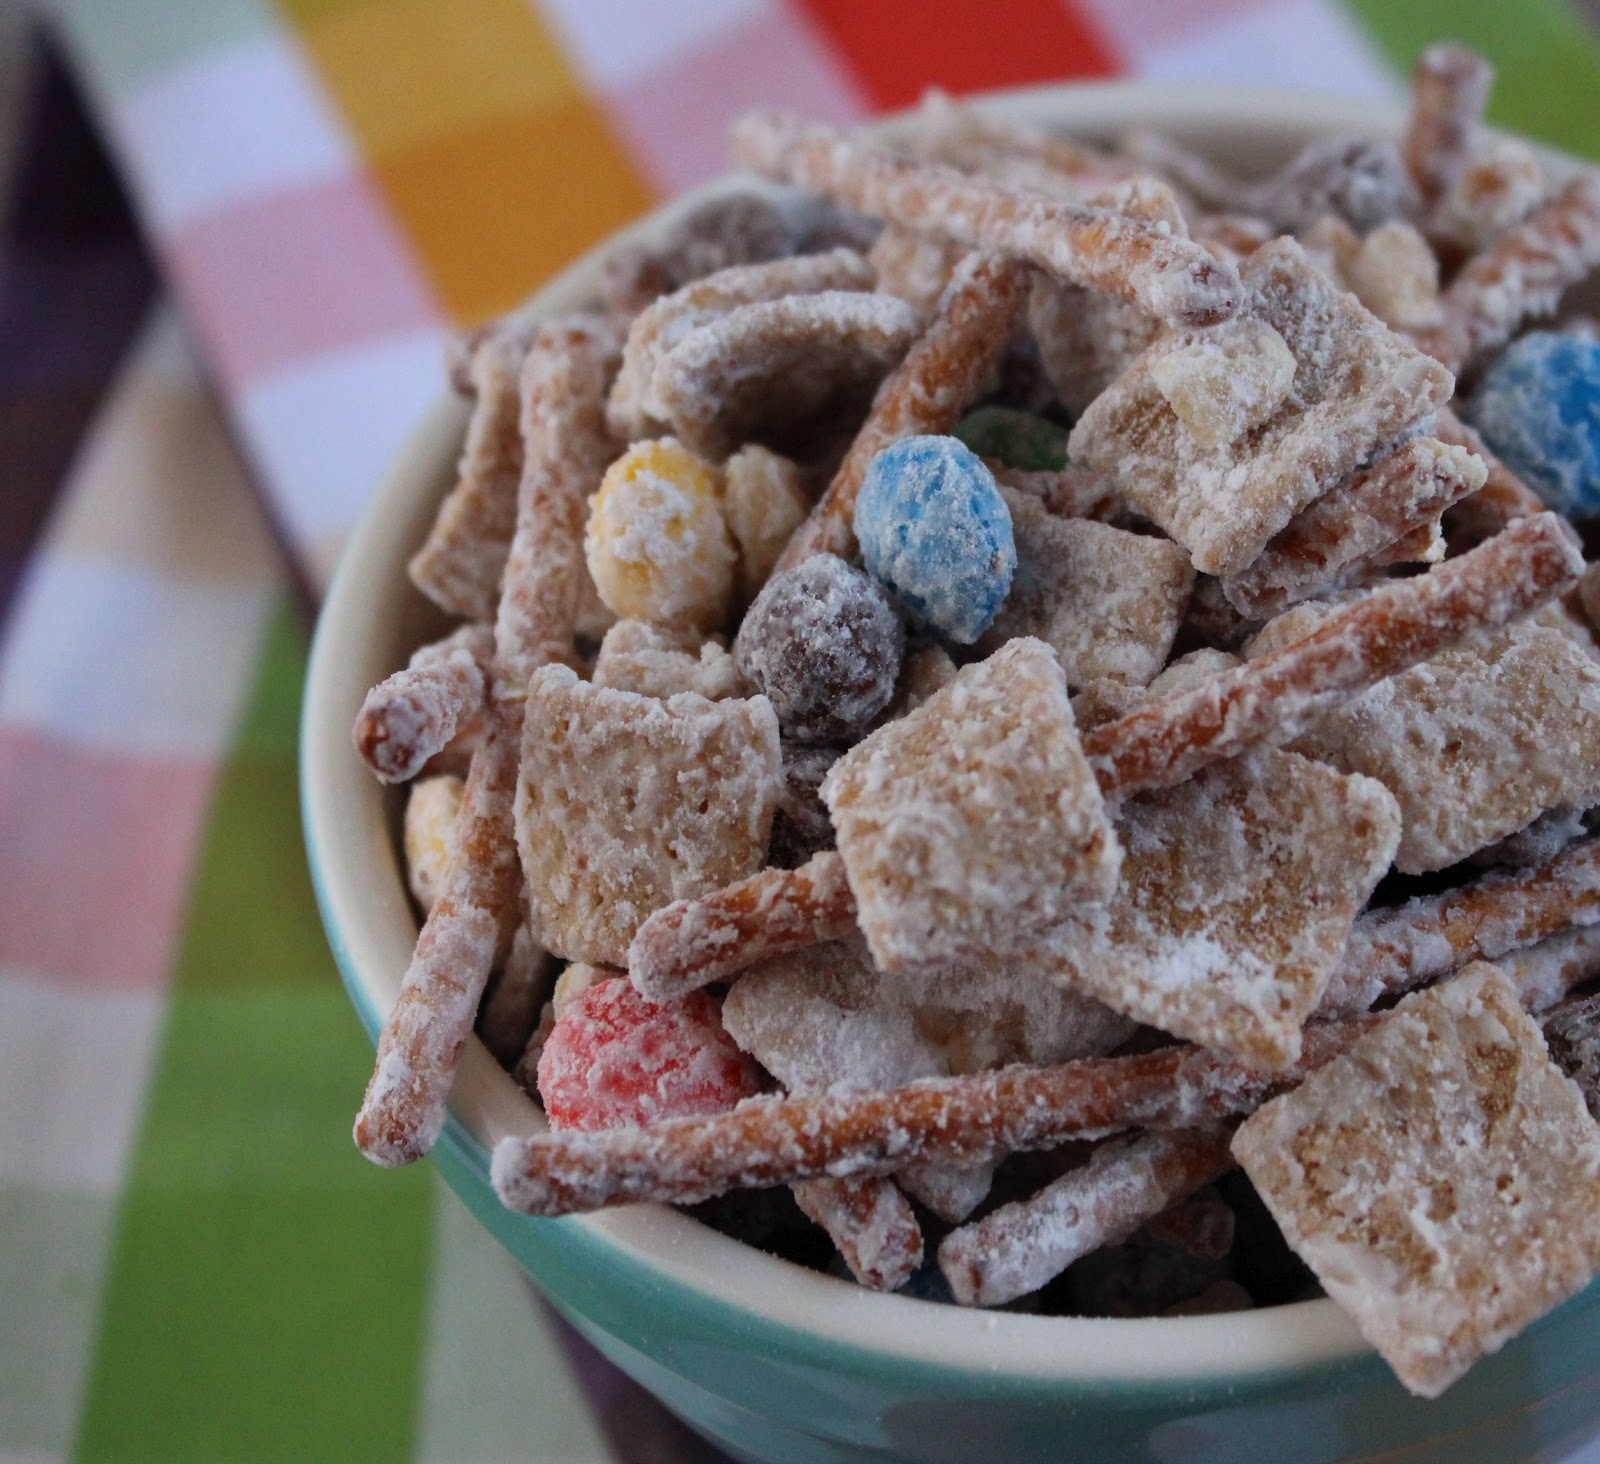 The Apron Gal: White Chocolate Snack Mix